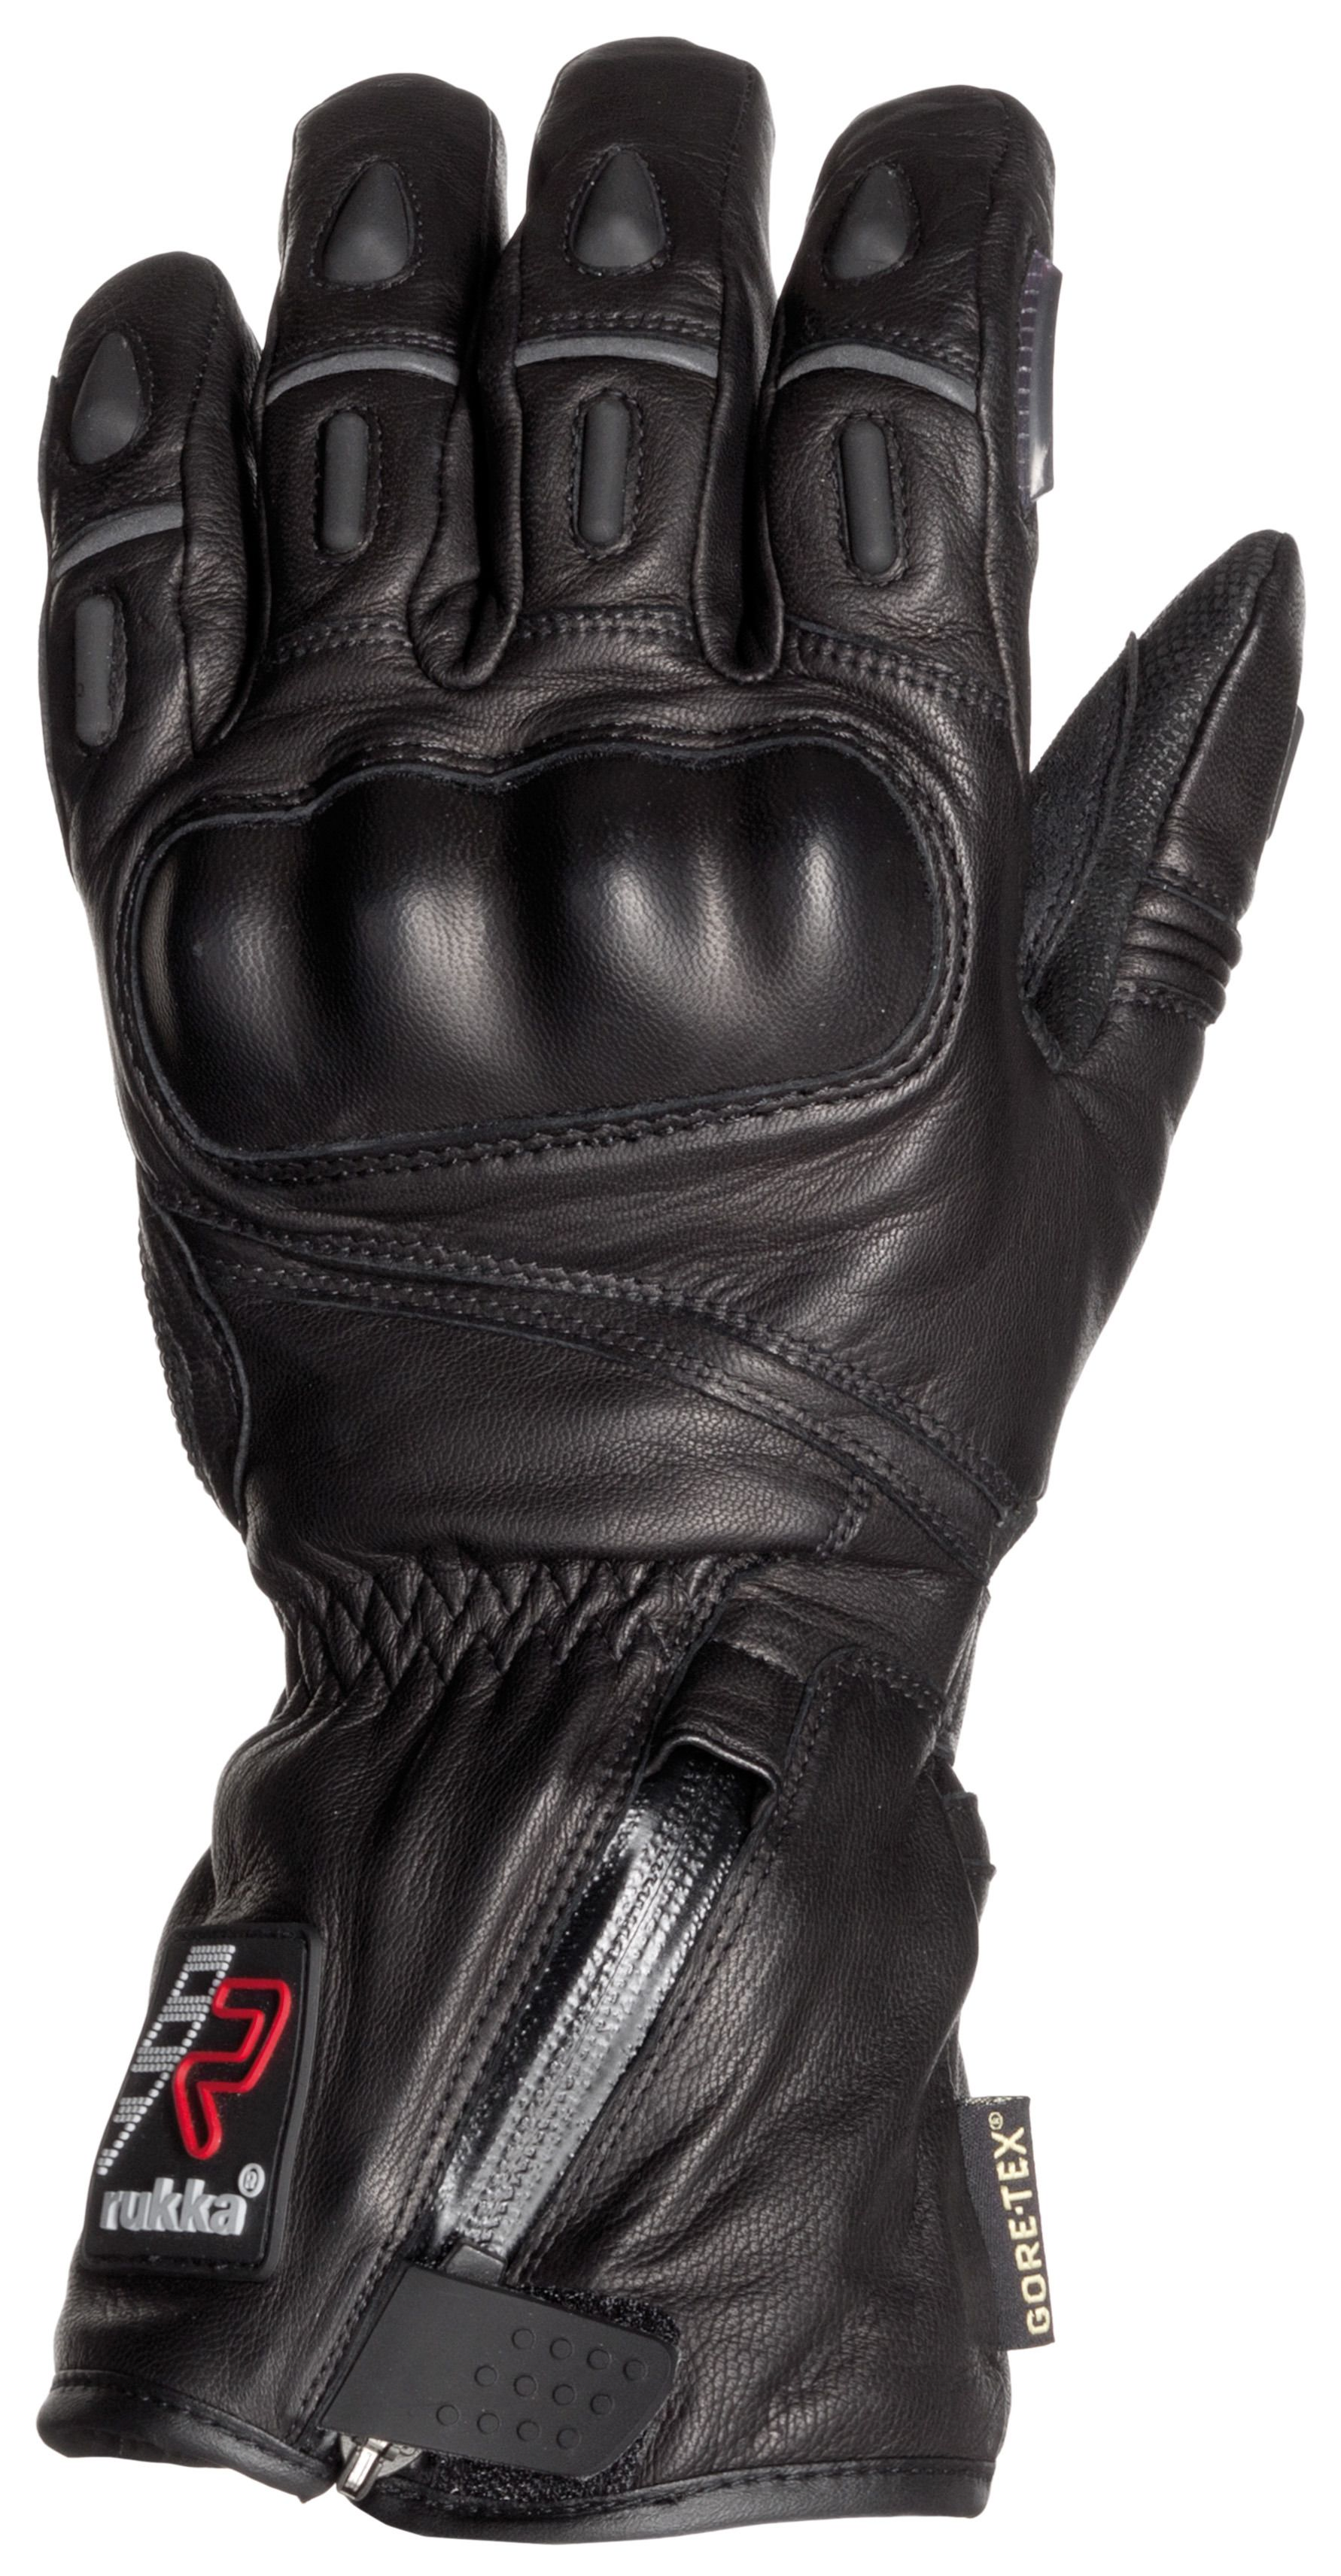 Motorcycle gloves tight or loose - Motorcycle Gloves Tight Or Loose 16